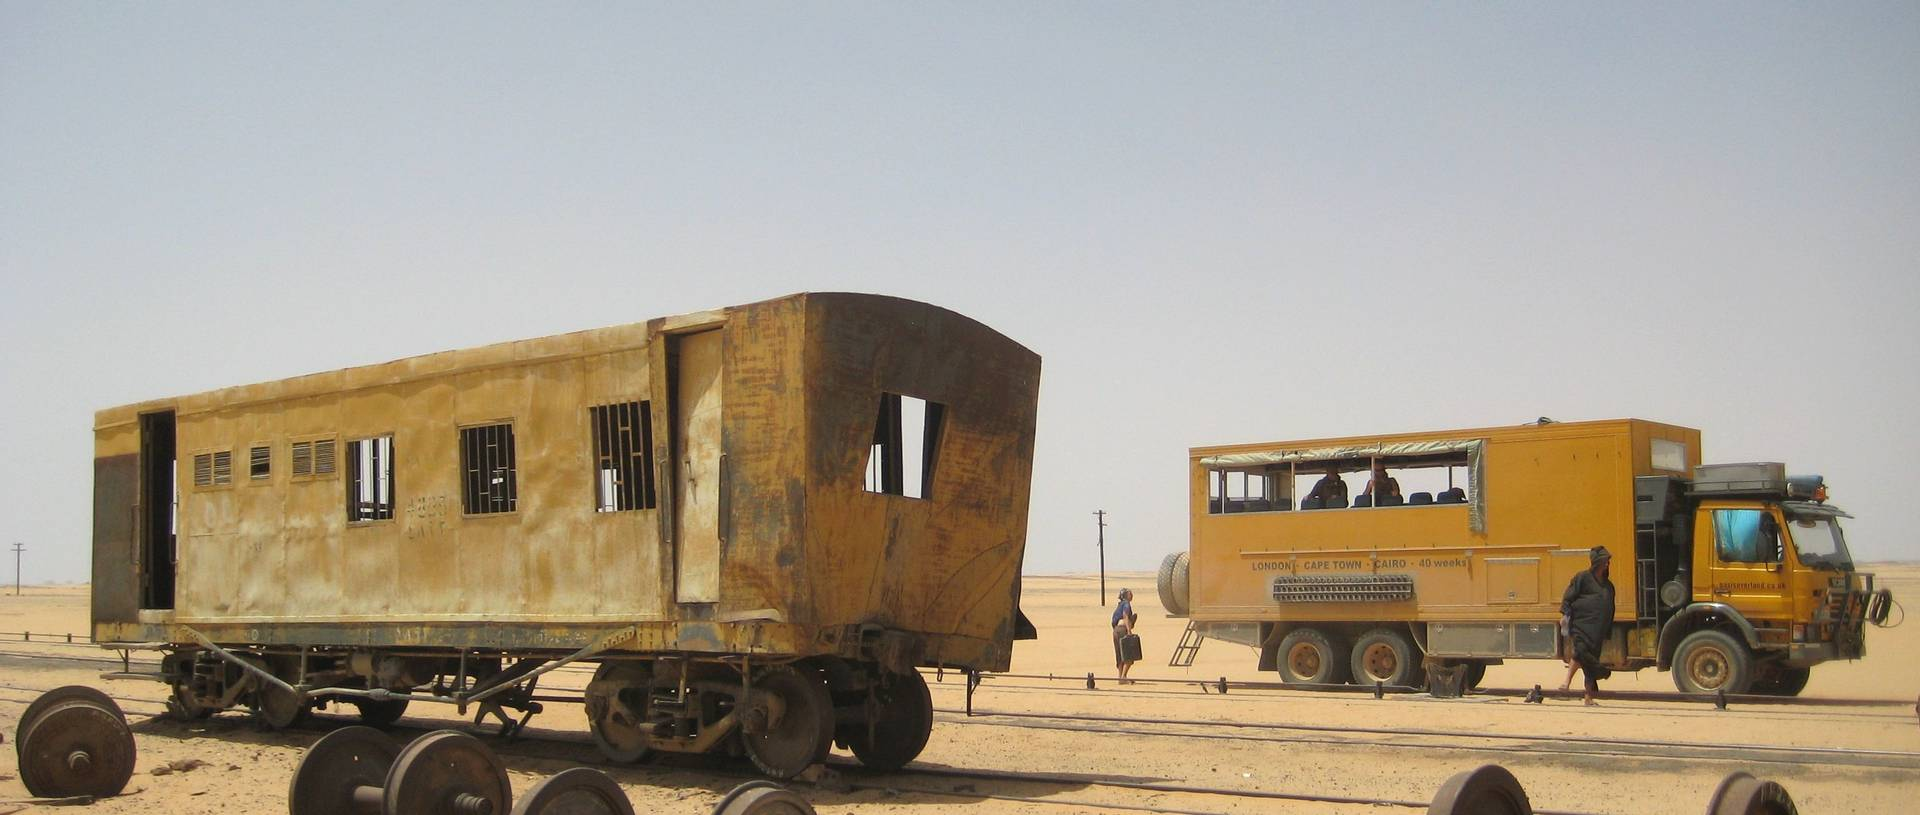 Truck With Sudanese Train Carriage